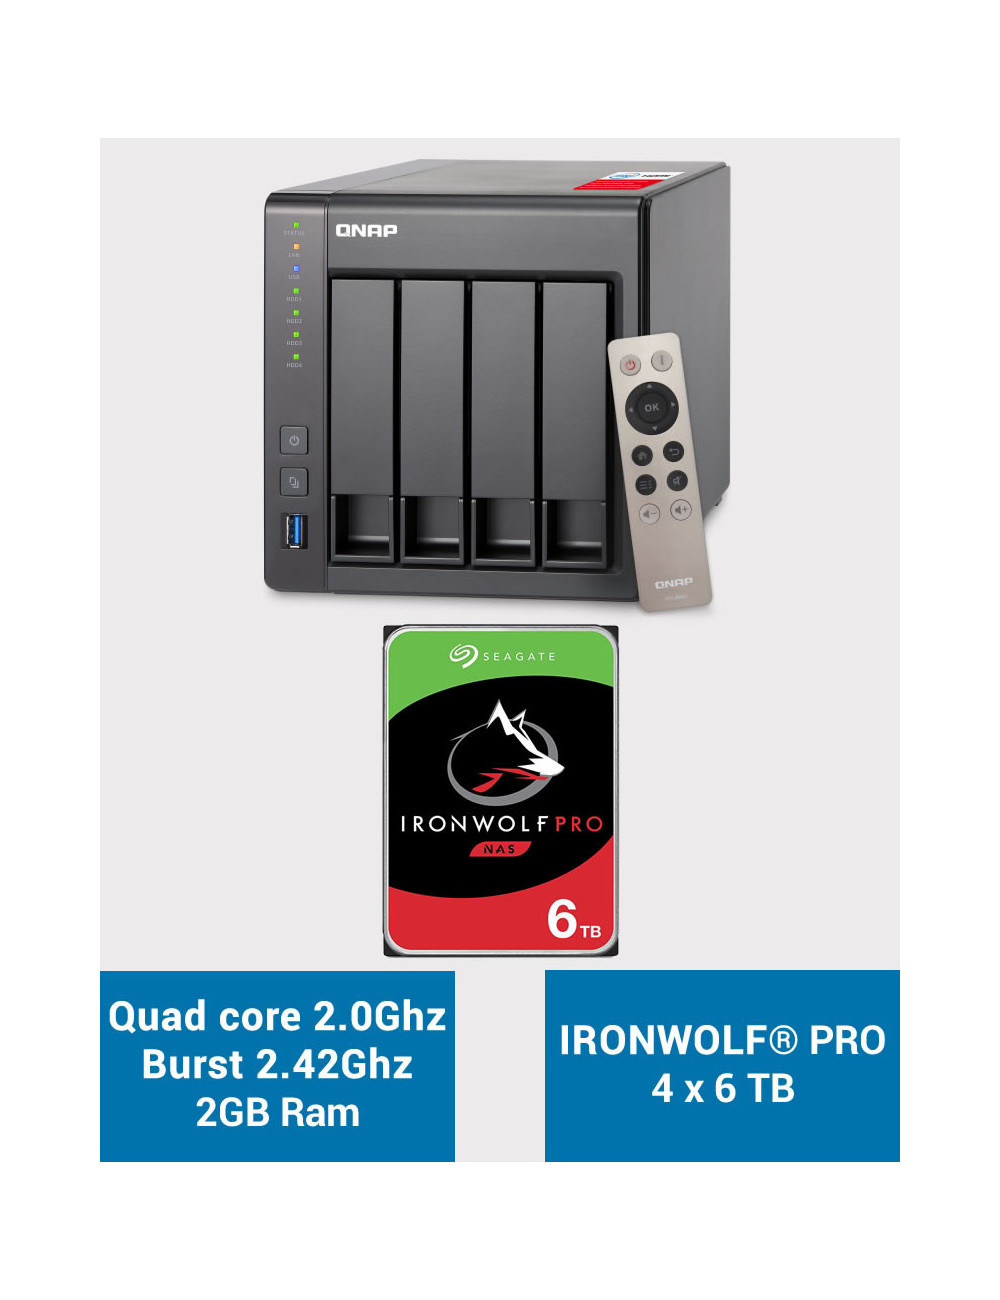 QNAP TS-451+ 2Go Serveur NAS IRONWOLF PRO 24To (4x6To)